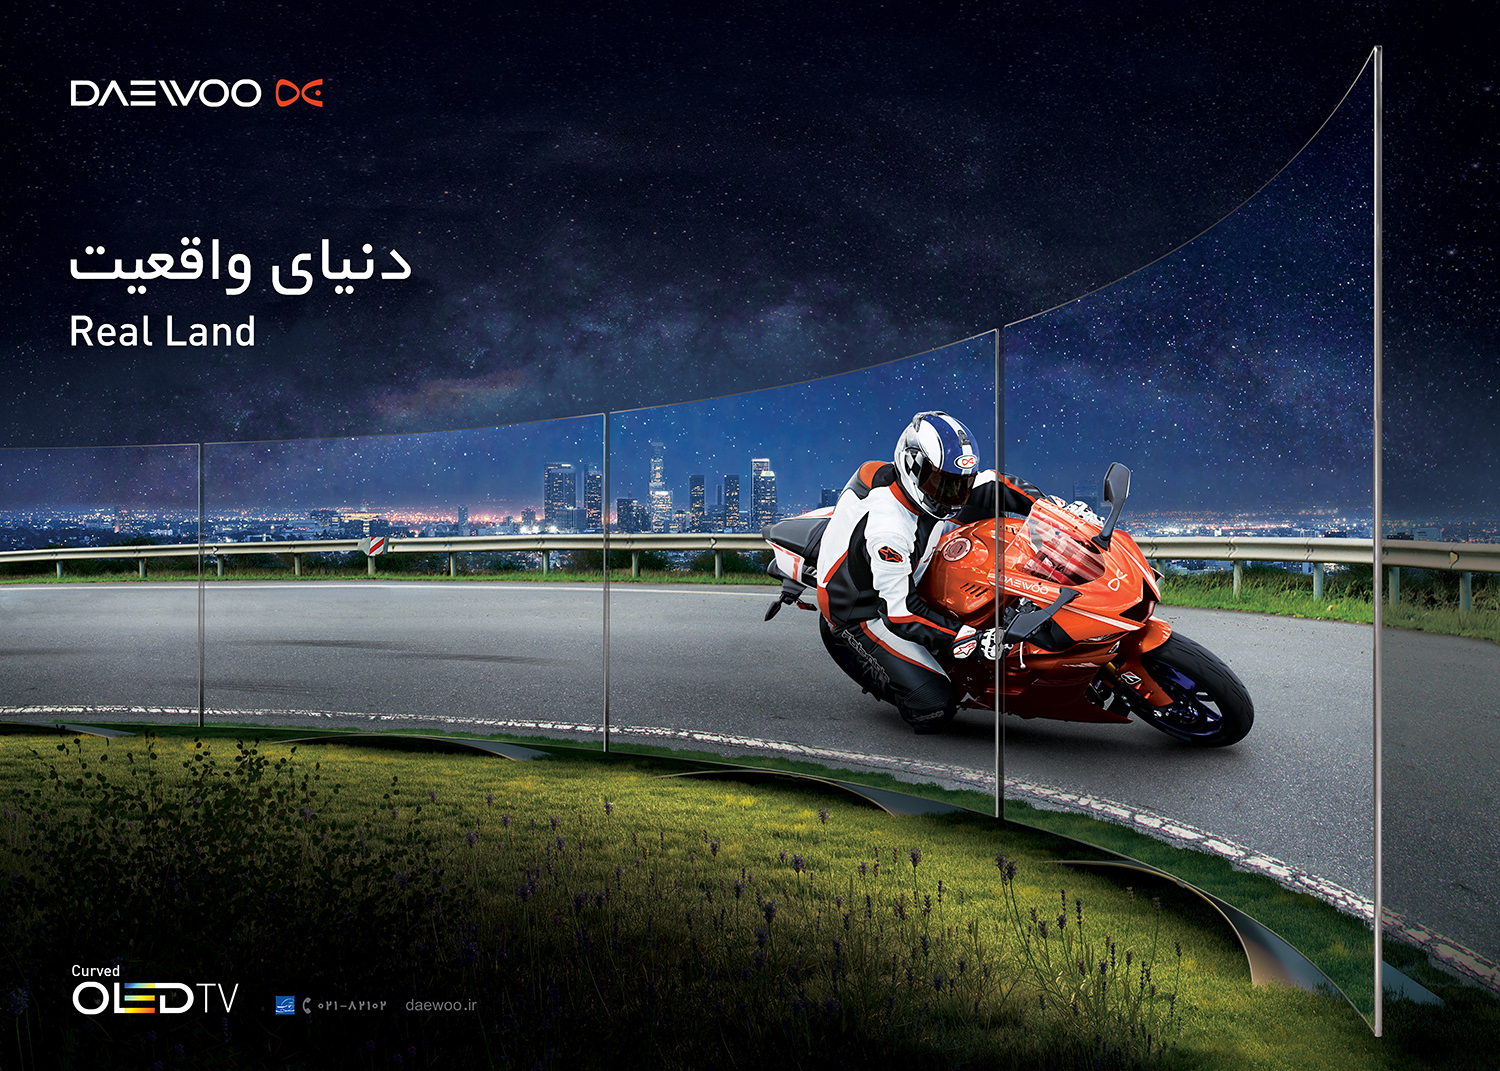 Daewoo OLED TV Advertising Campaign, Poster, Copyrighting,